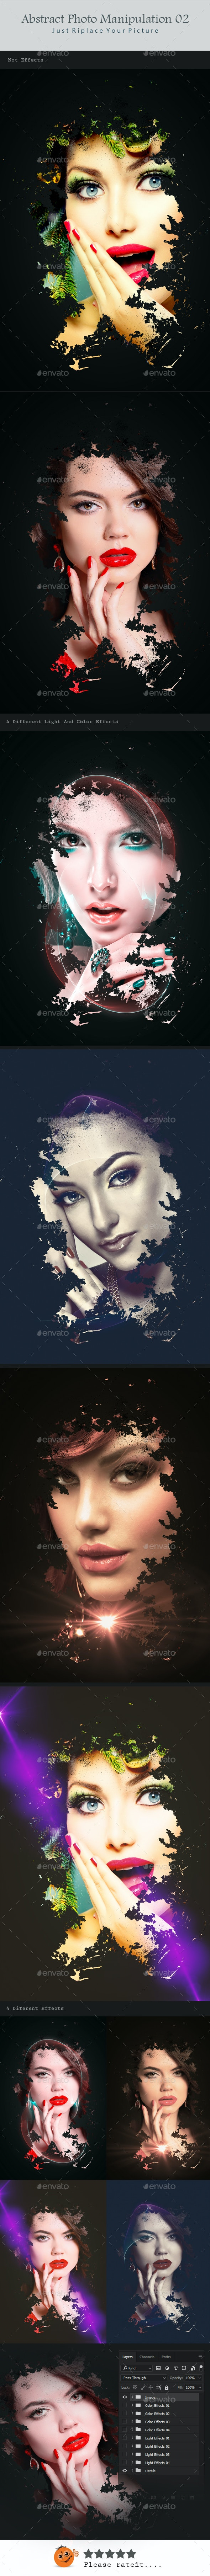 Abstract Photo Manipulation 02 - Photo Templates Graphics